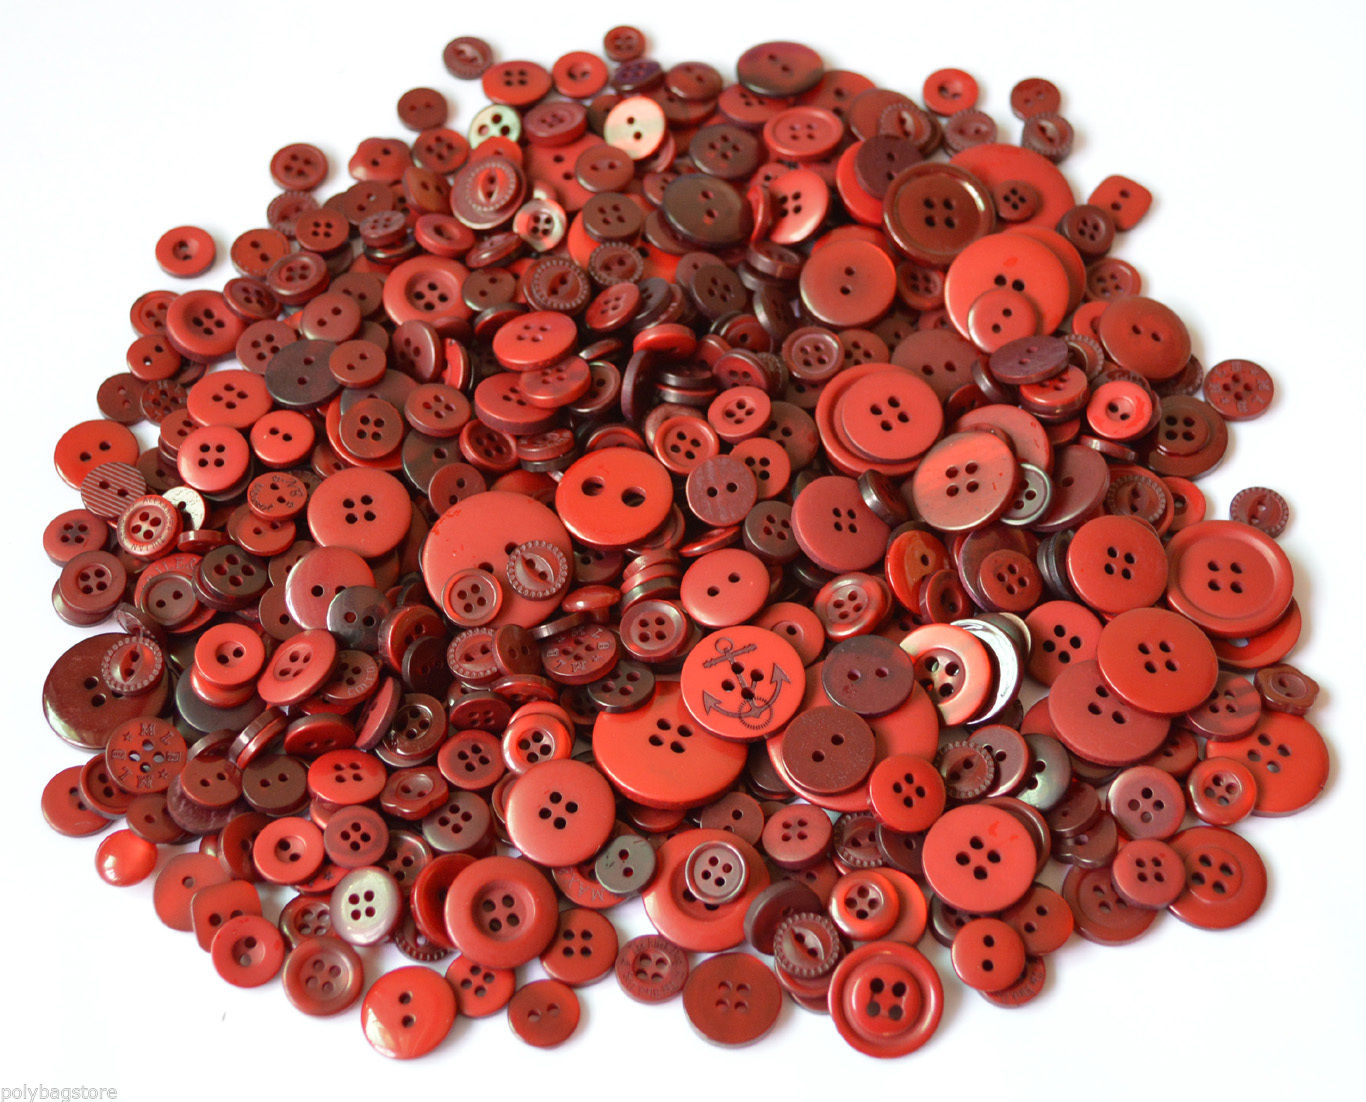 ASSORTED BUTTONS PACK OF 50G ORANGE MIXED BUTTONS PLASTIC BUTTONS